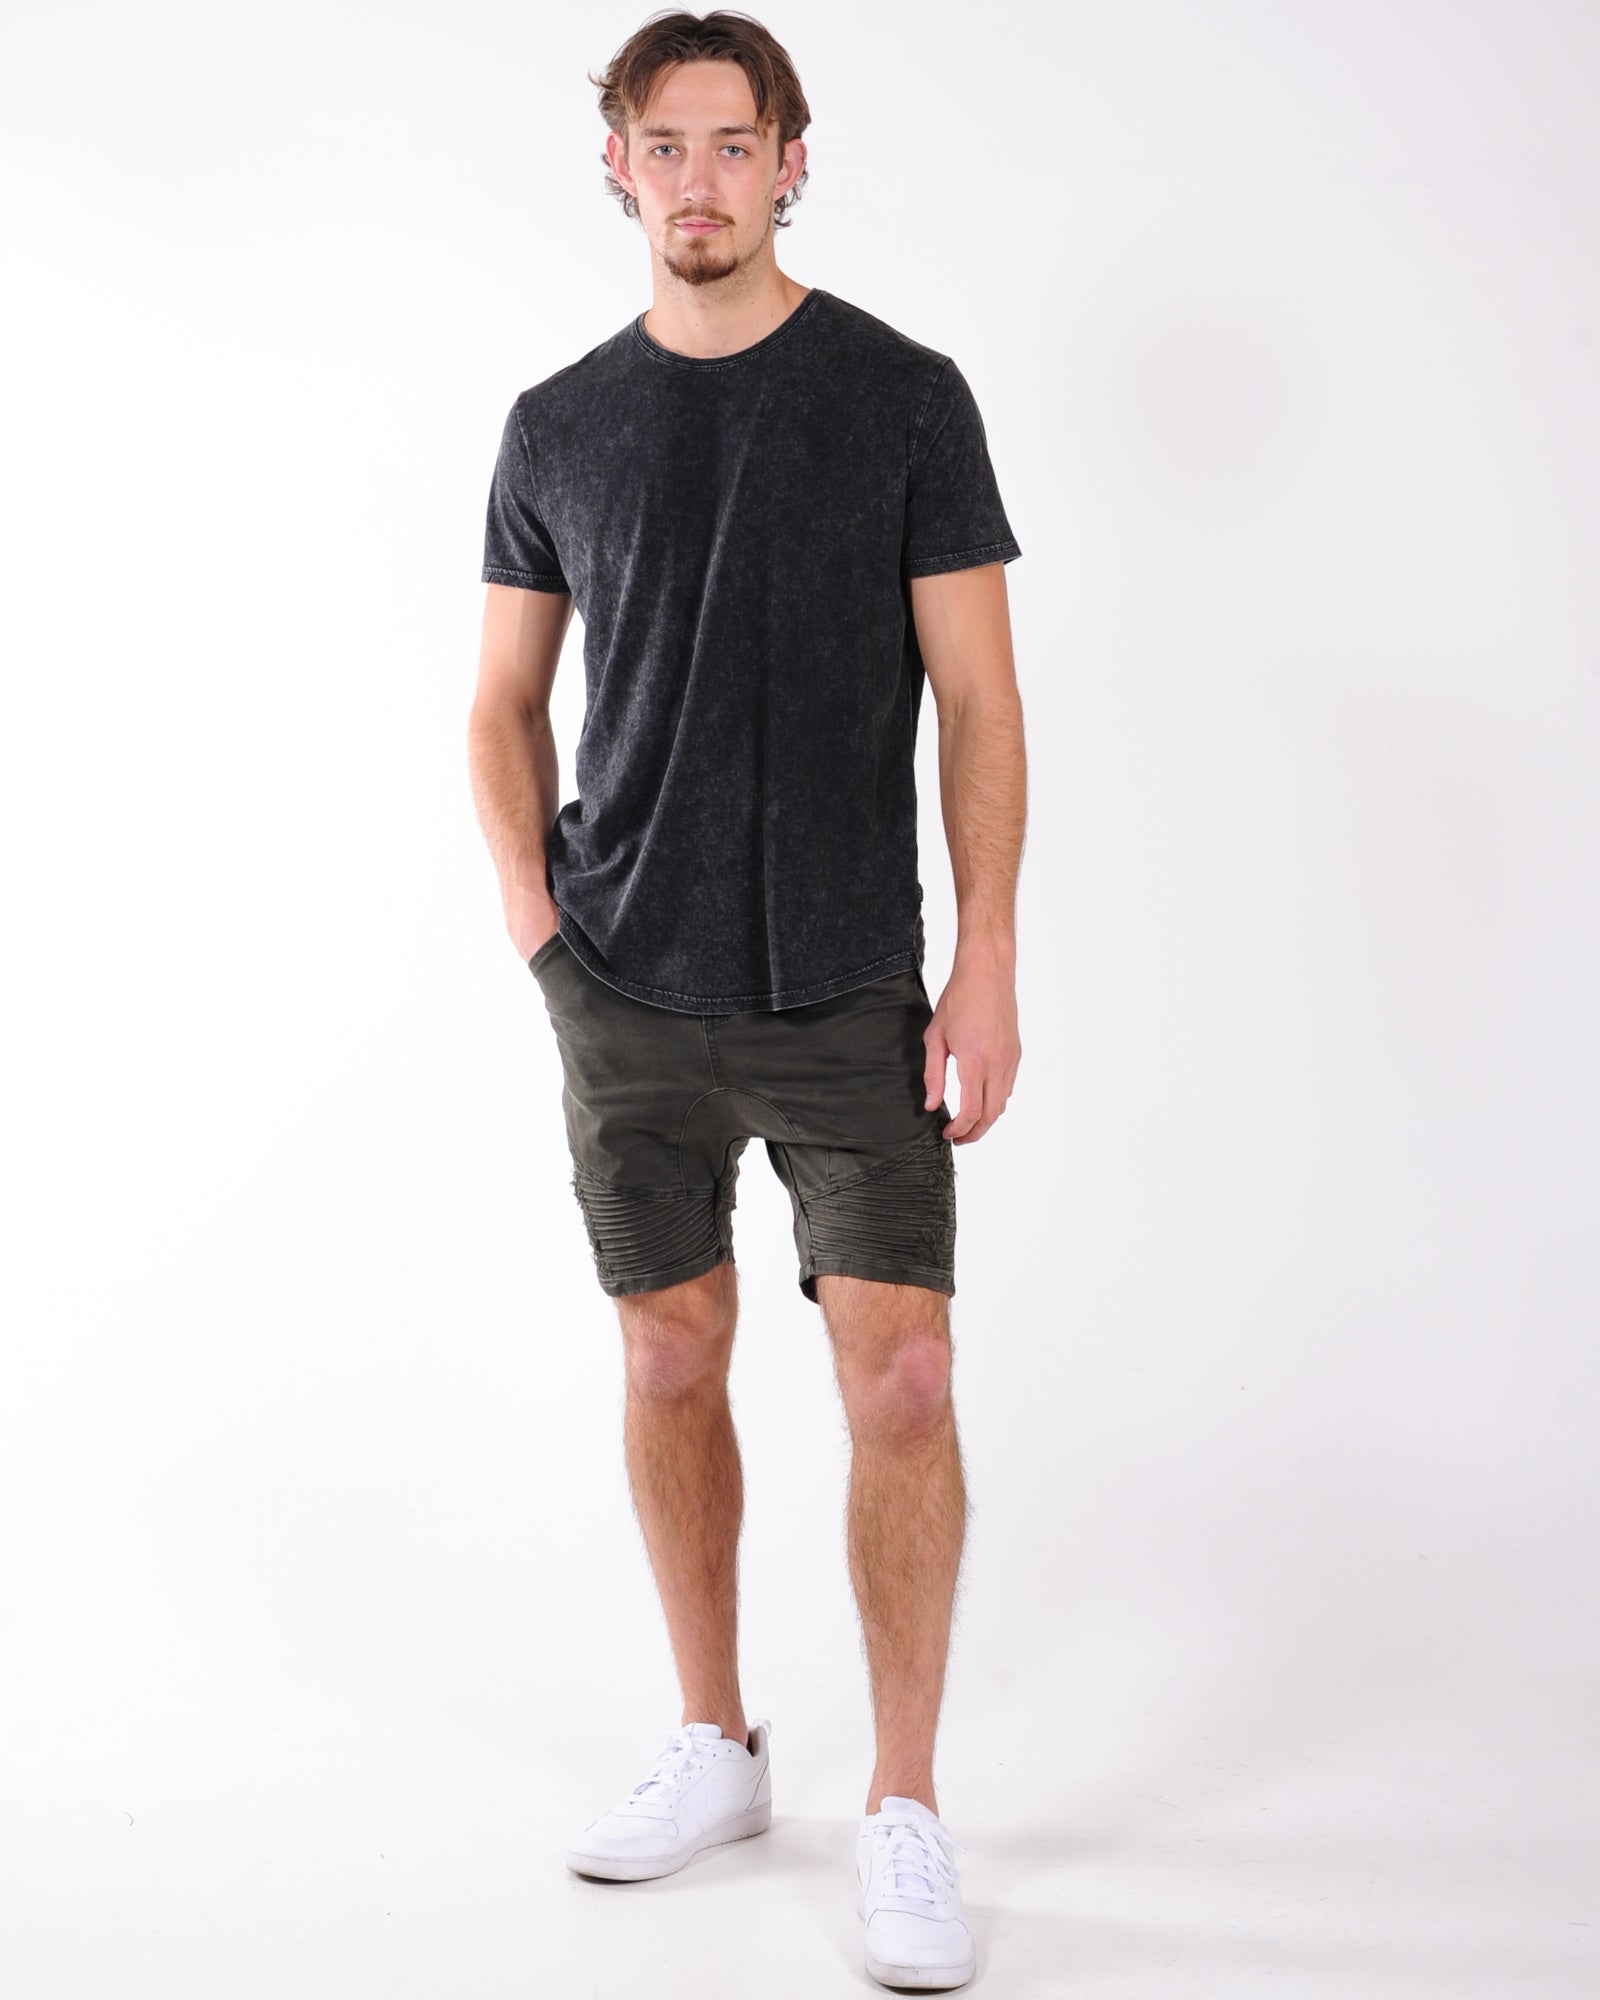 Silent Theory Outlaw Short - Trashed Khaki